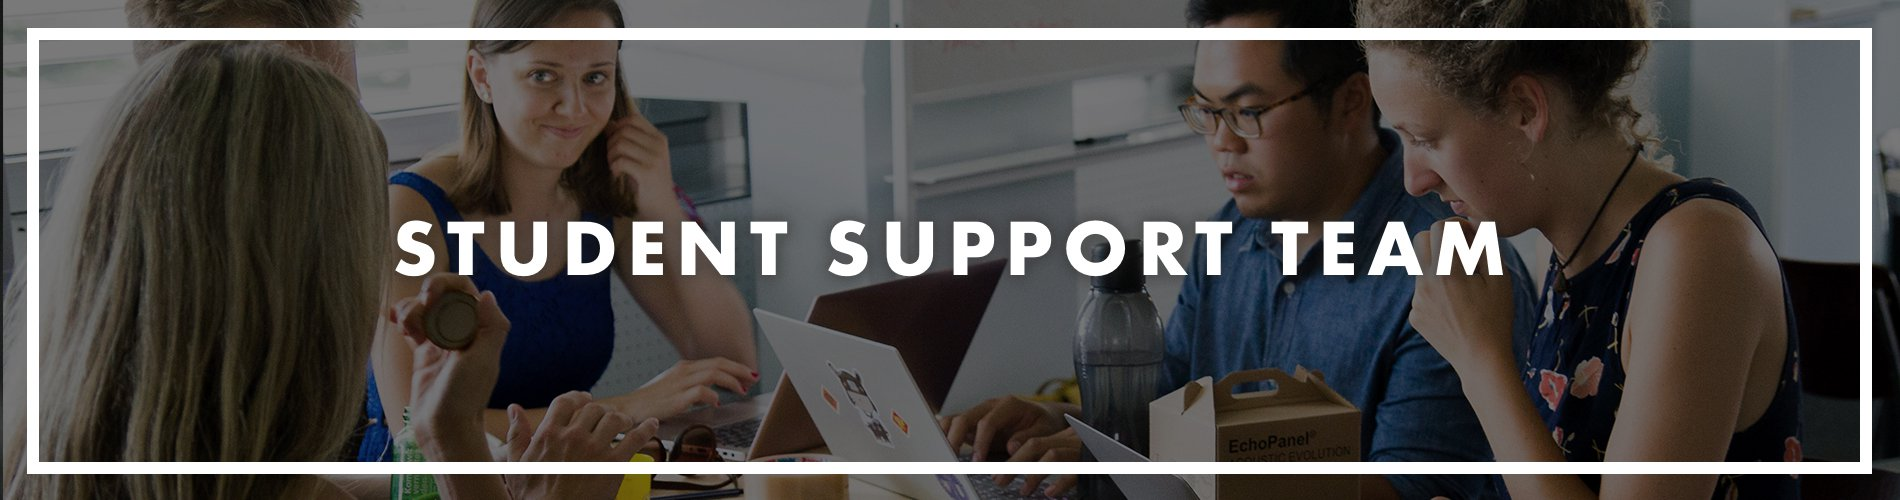 Student Support Team banner